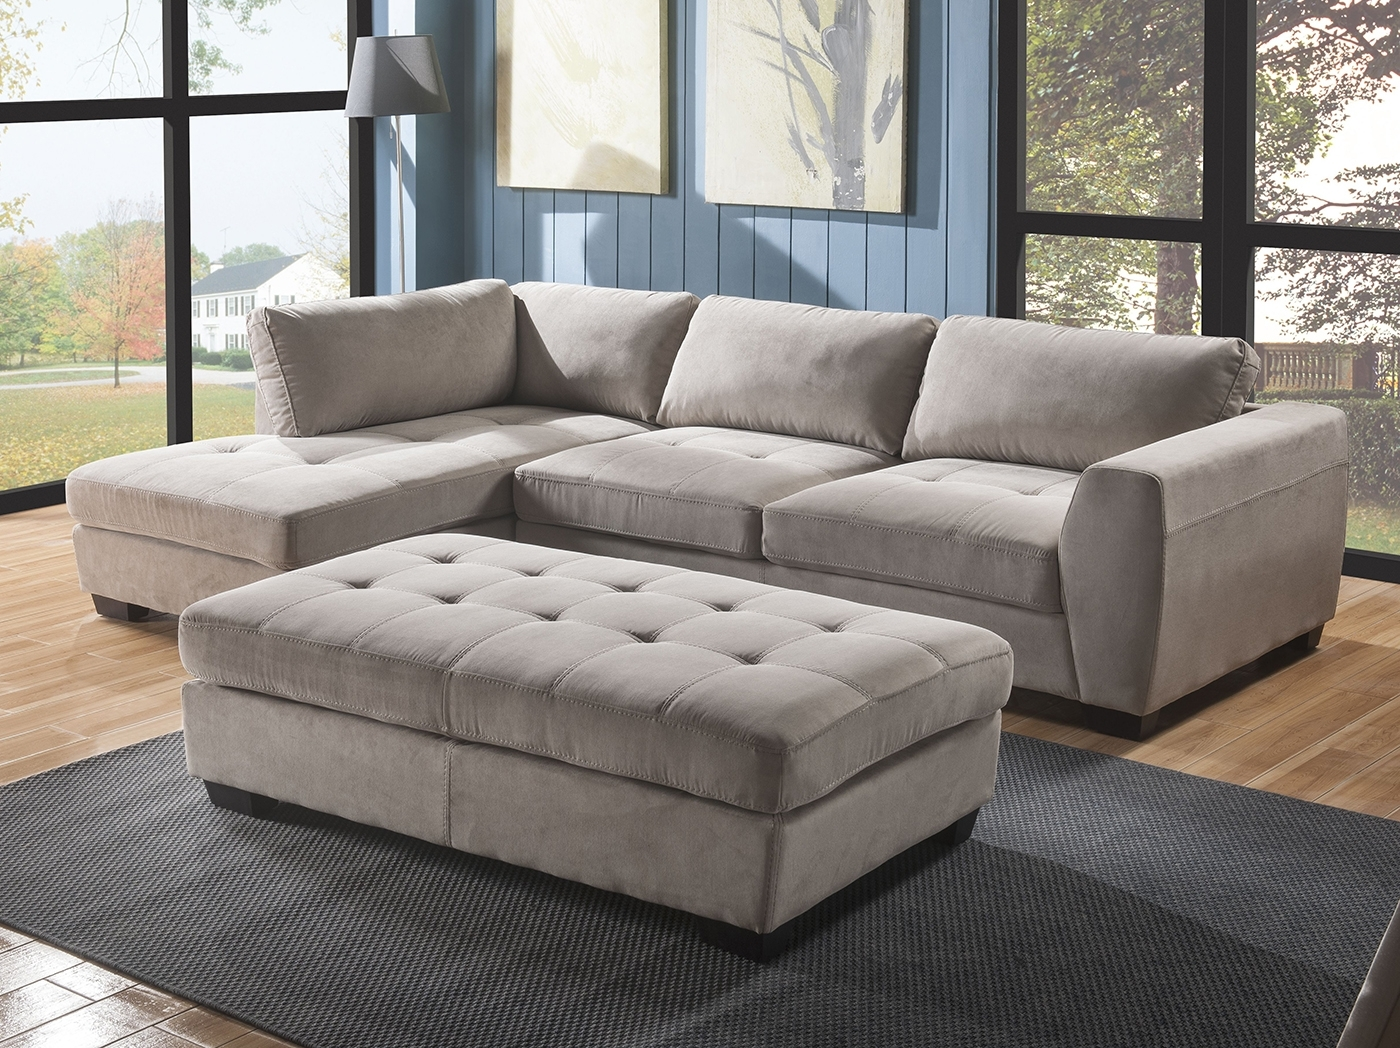 Trendy Nh Sectional Sofas Inside Sofas : Marvelous Living Room Sectionals Leather Reclining (View 13 of 20)